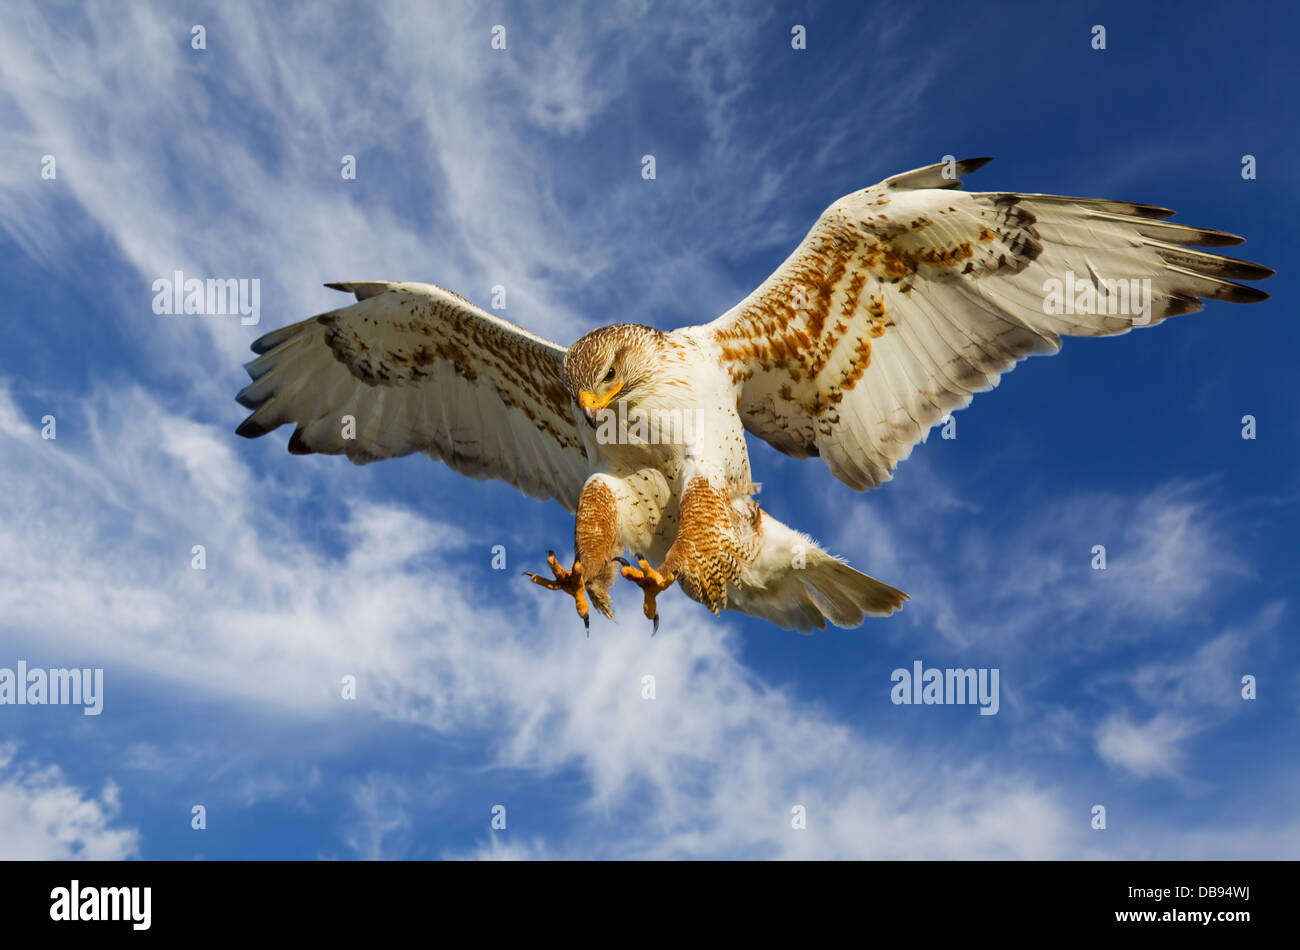 Large Ferruginous Hawk in attack mode with blue sky - Stock Image